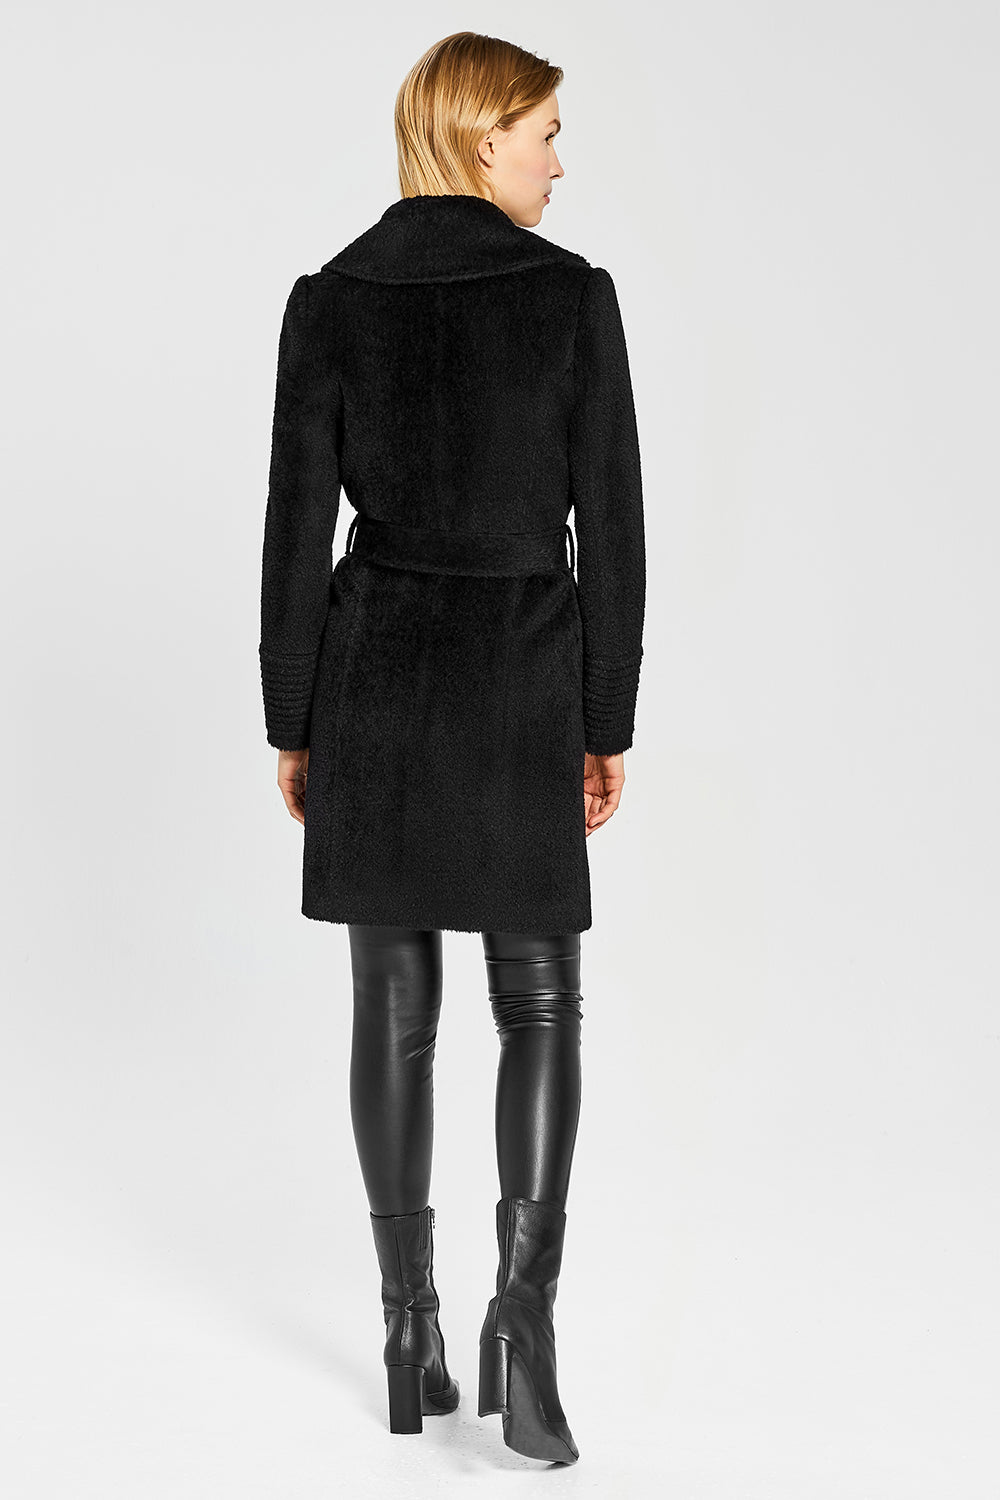 Sentaler Bouclé Alpaca Mid Length Notched Collar Wrap Coat featured in Bouclé Alpaca and available in Black. Seen from back.